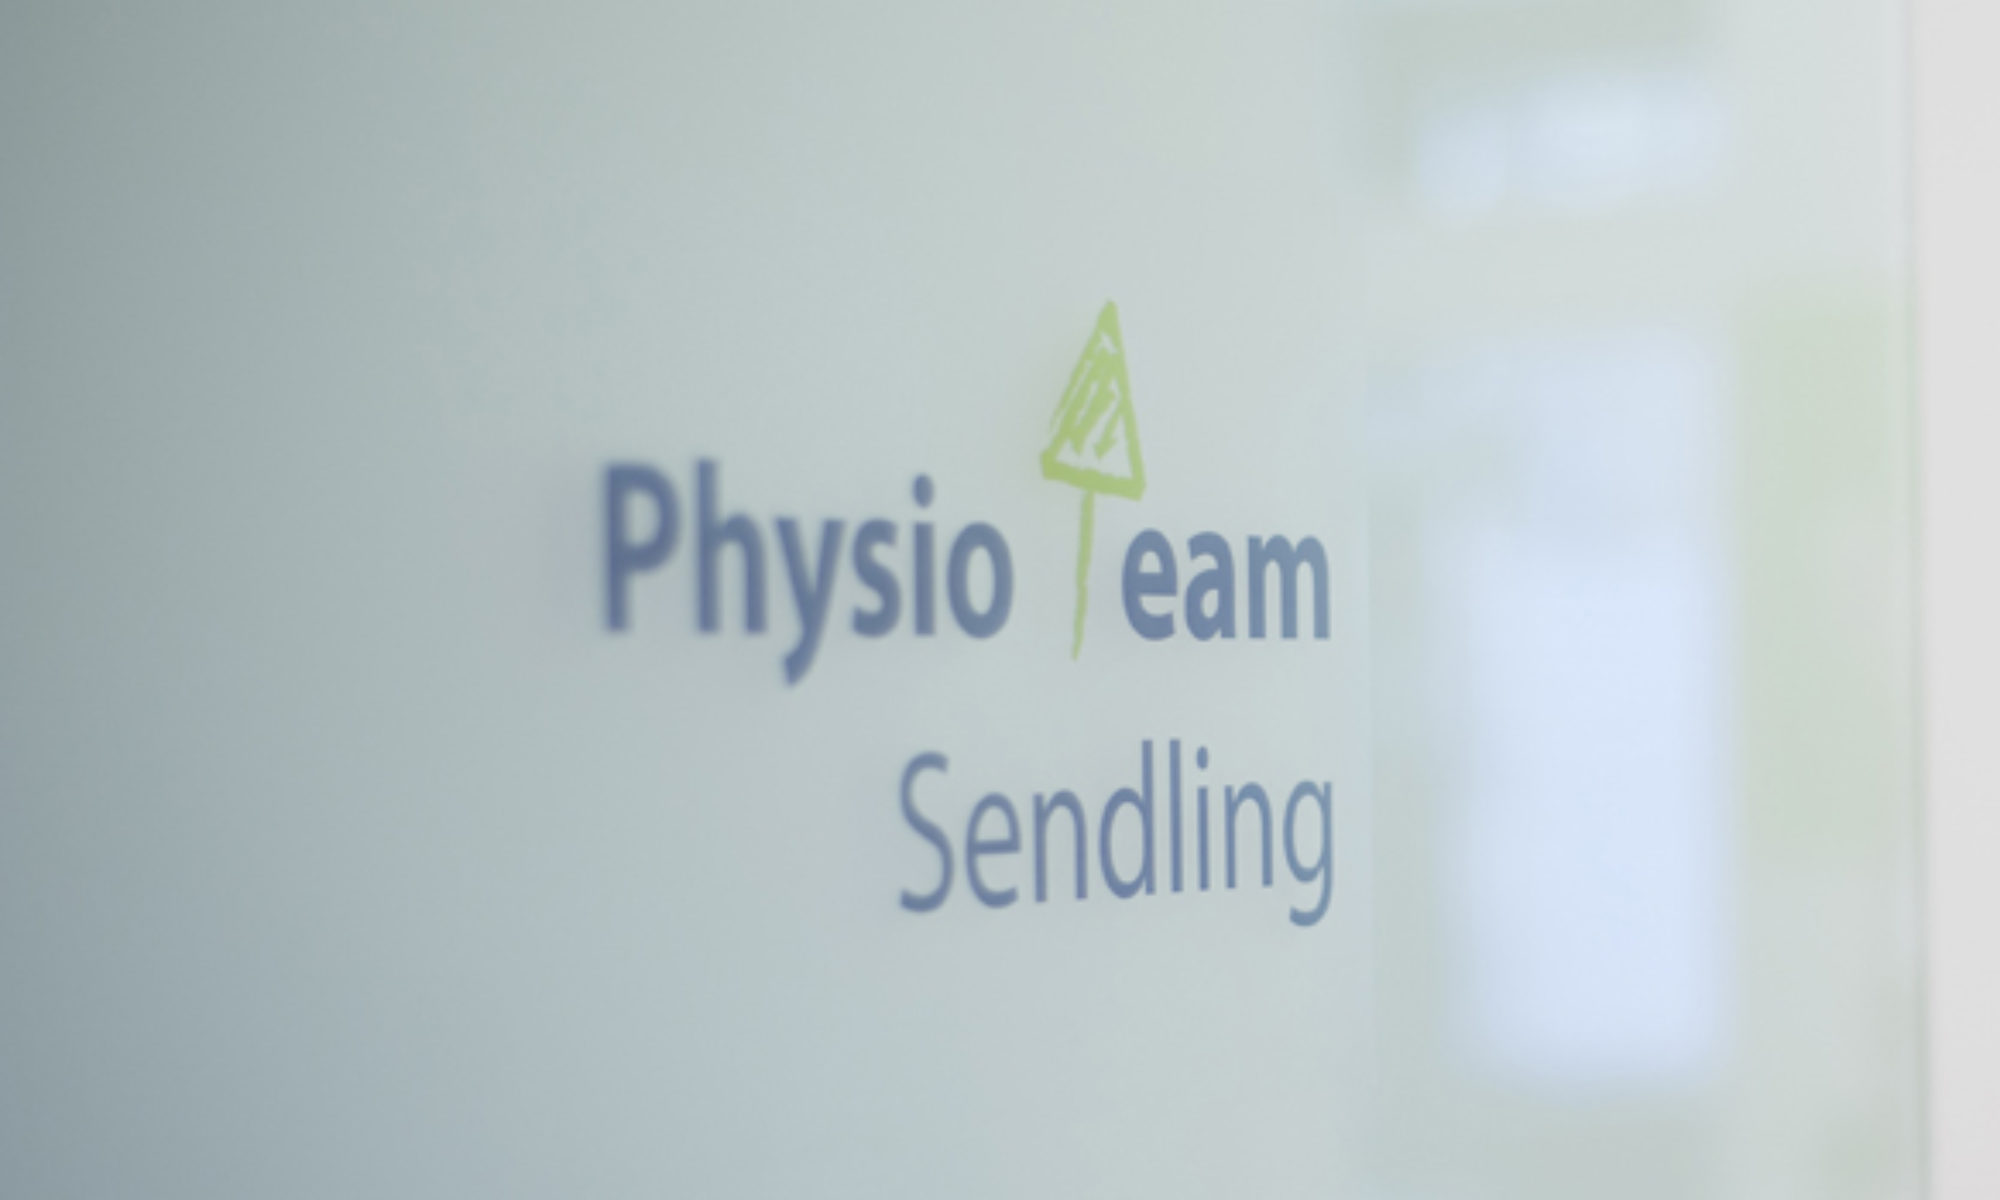 PhysioTeam Sendling